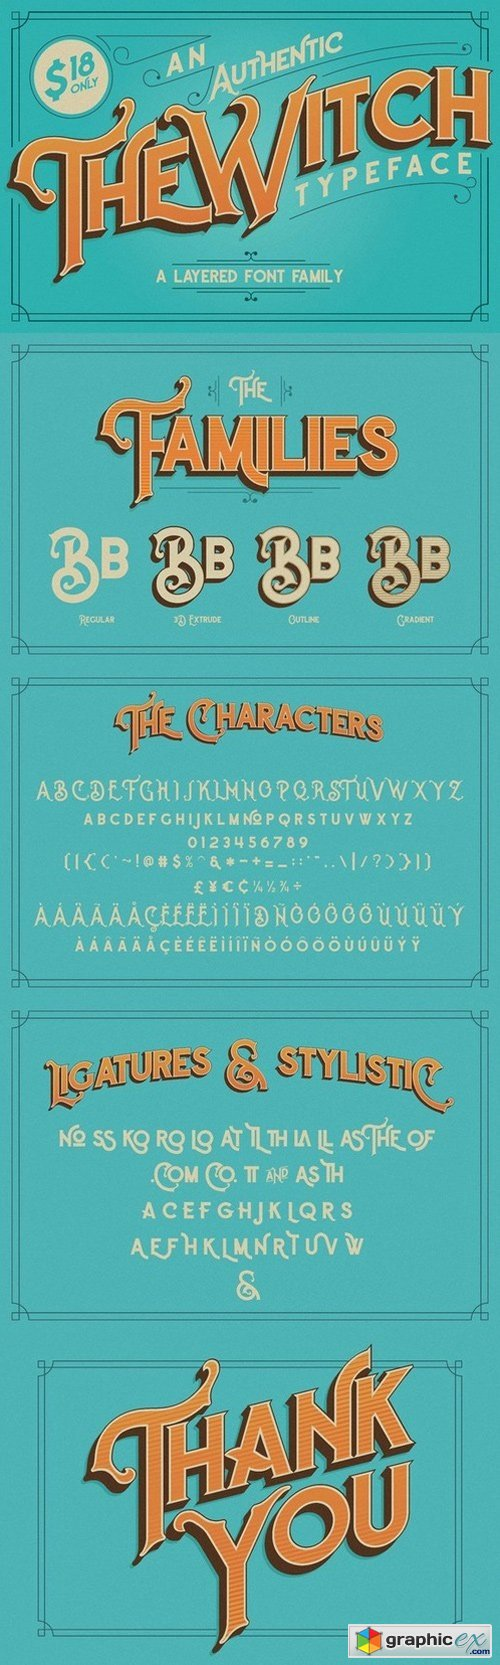 The Witch Typeface